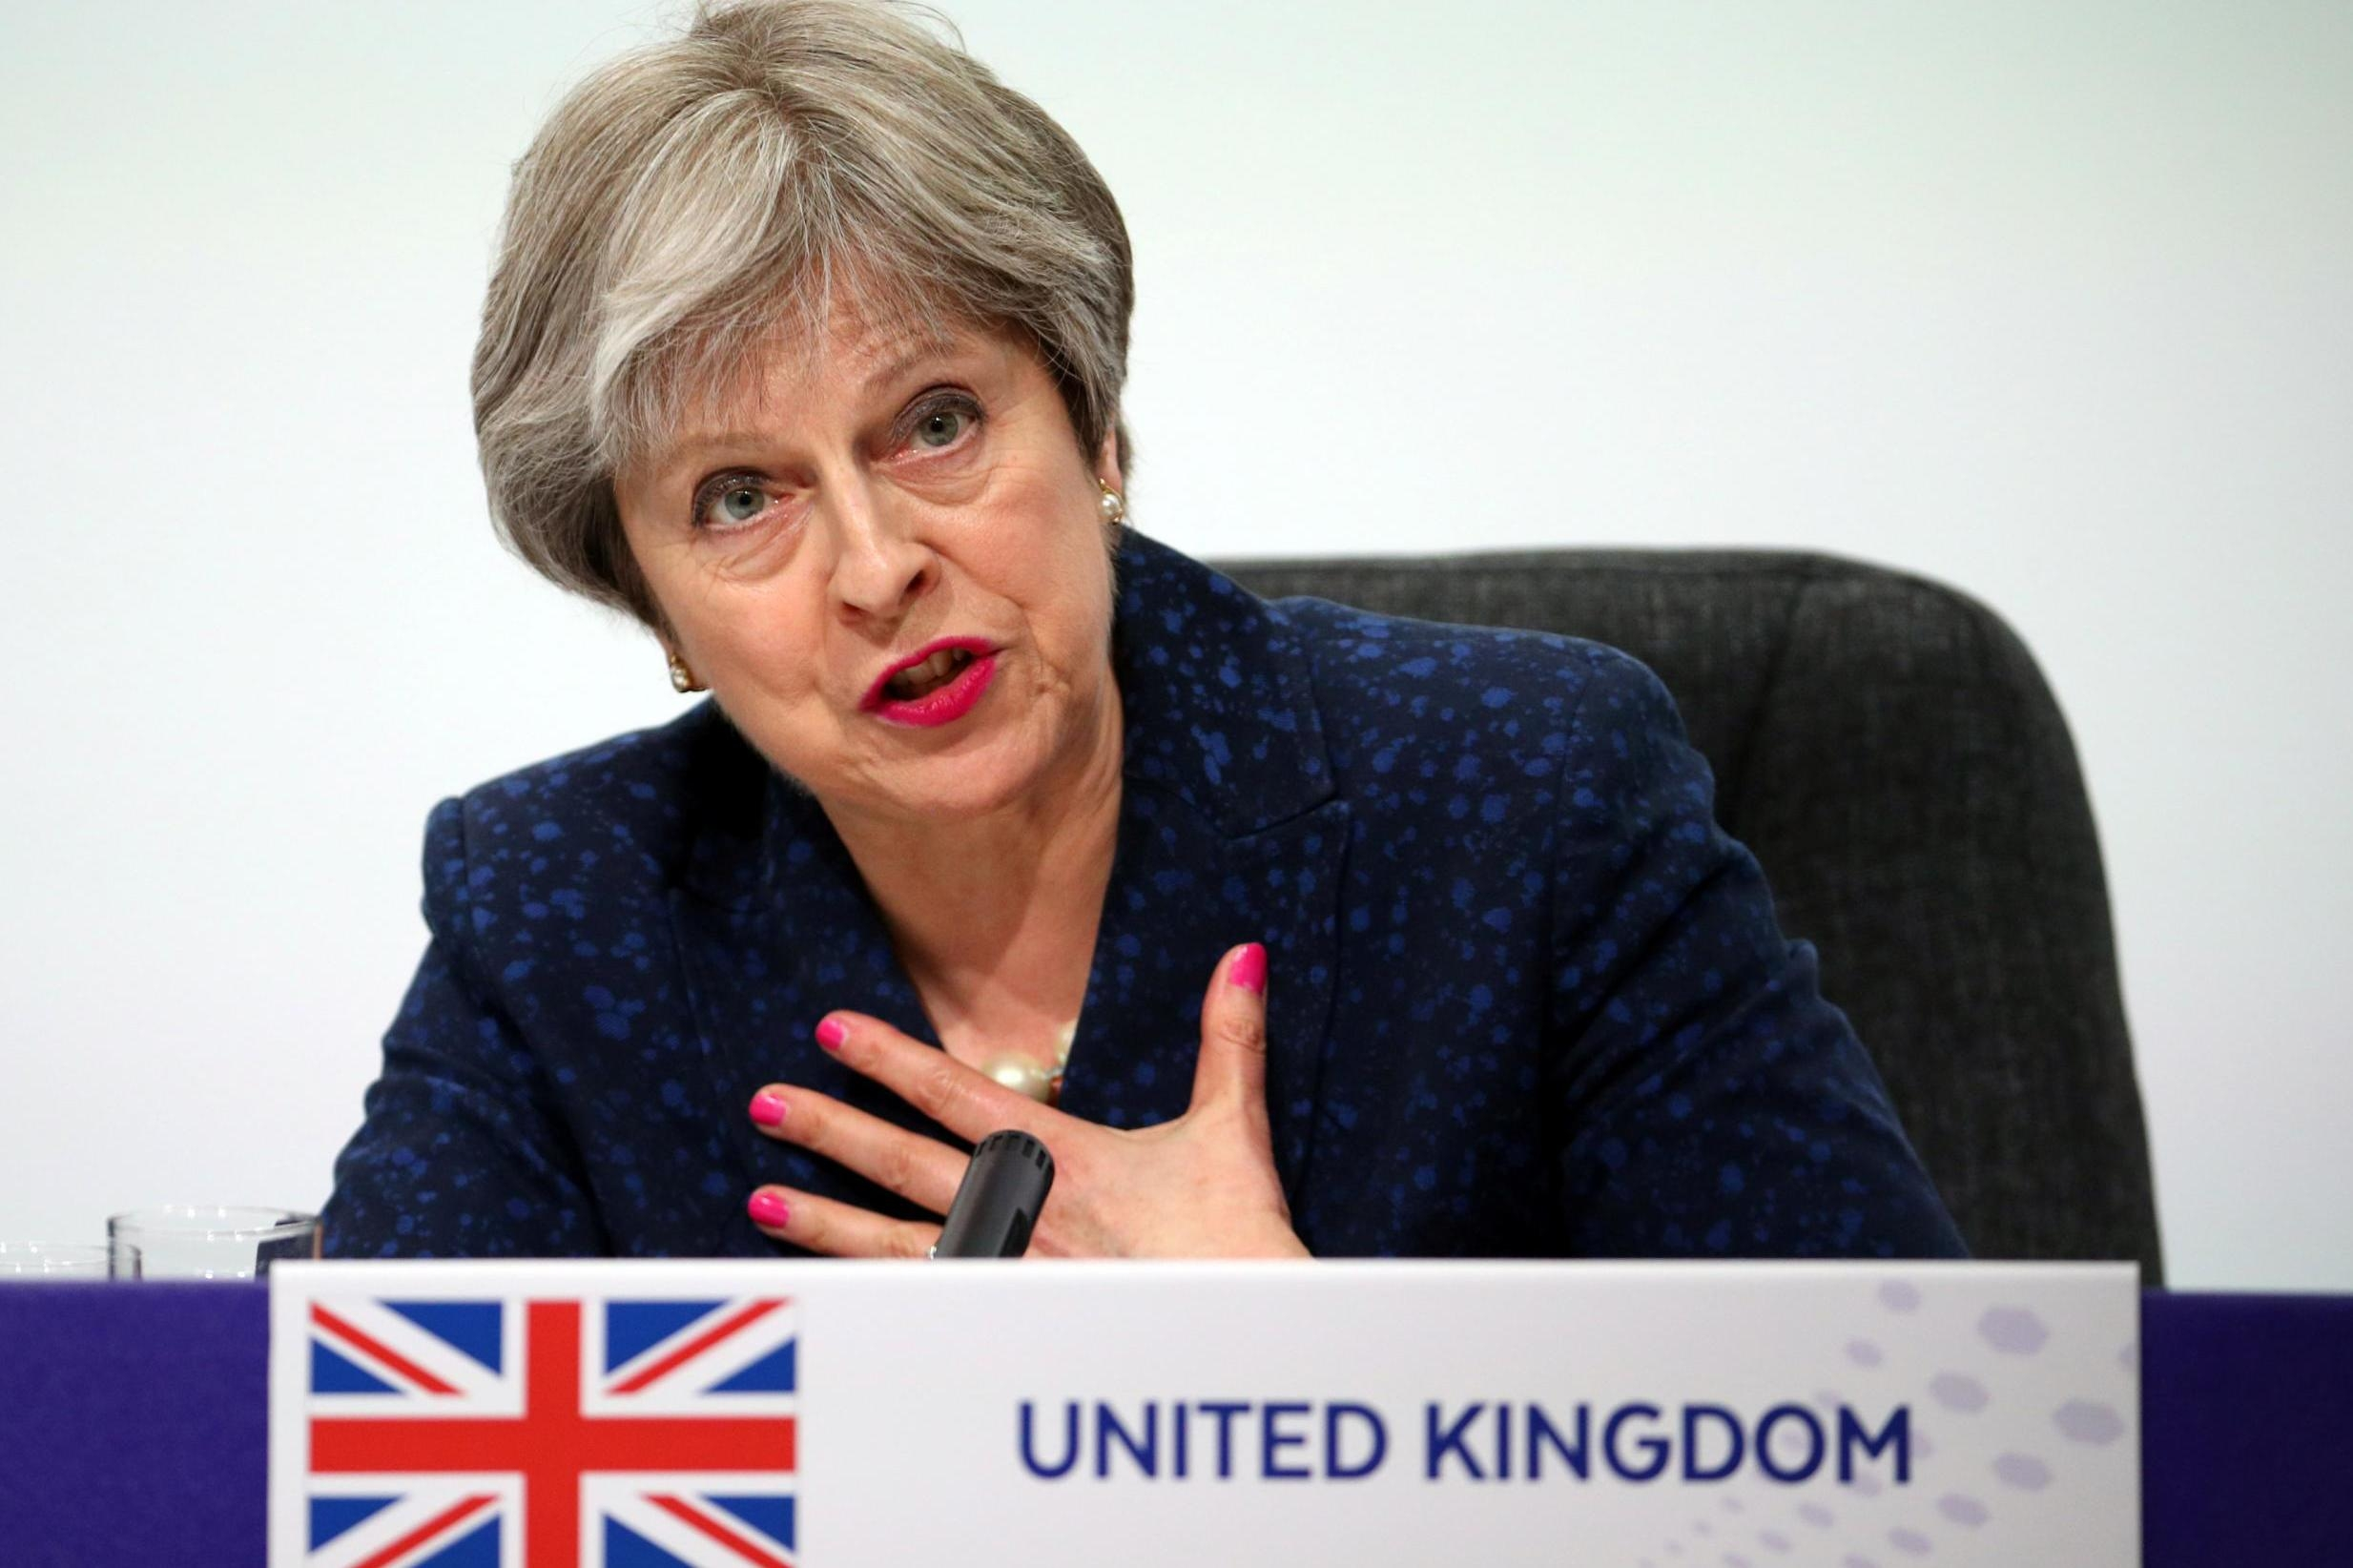 UK PM: Compensation for Windrush generation